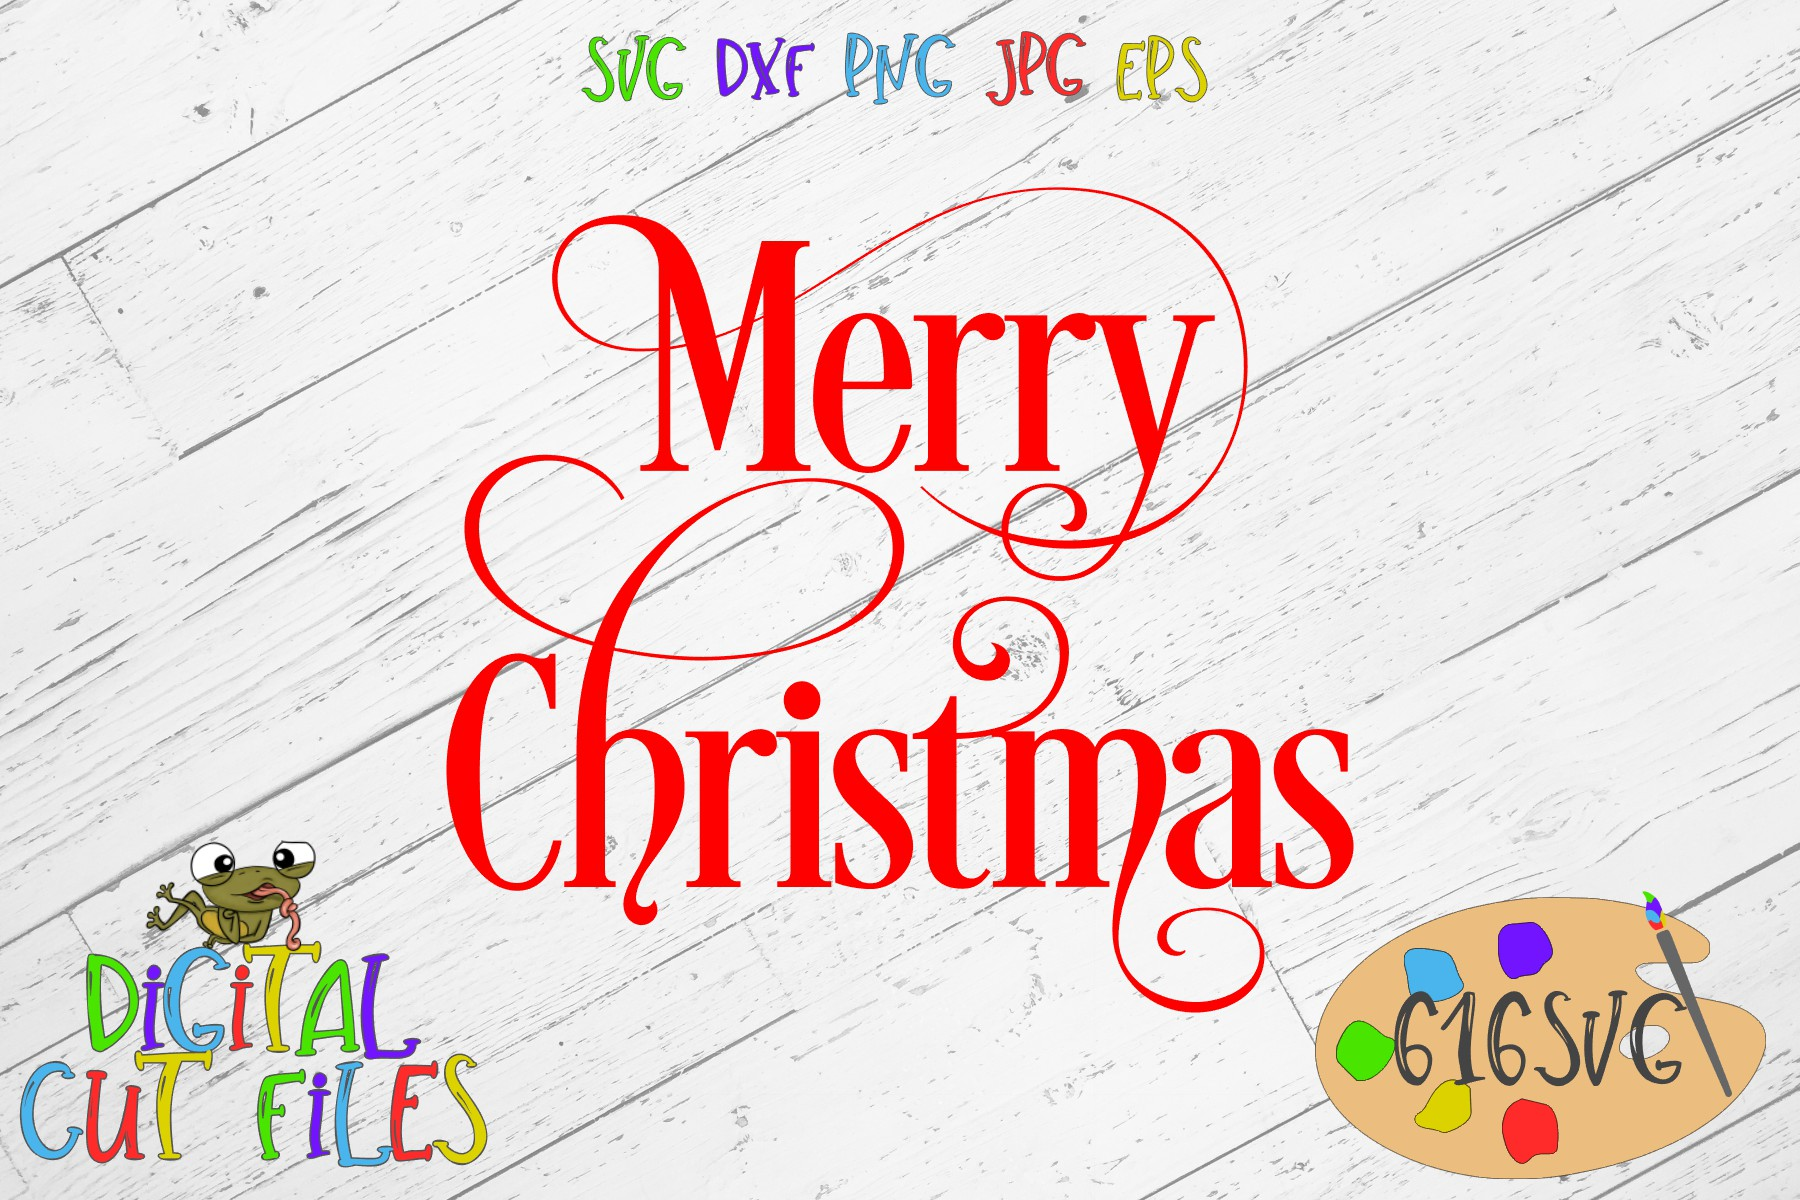 Merry Christmas Svg Graphic By 616svg Creative Fabrica